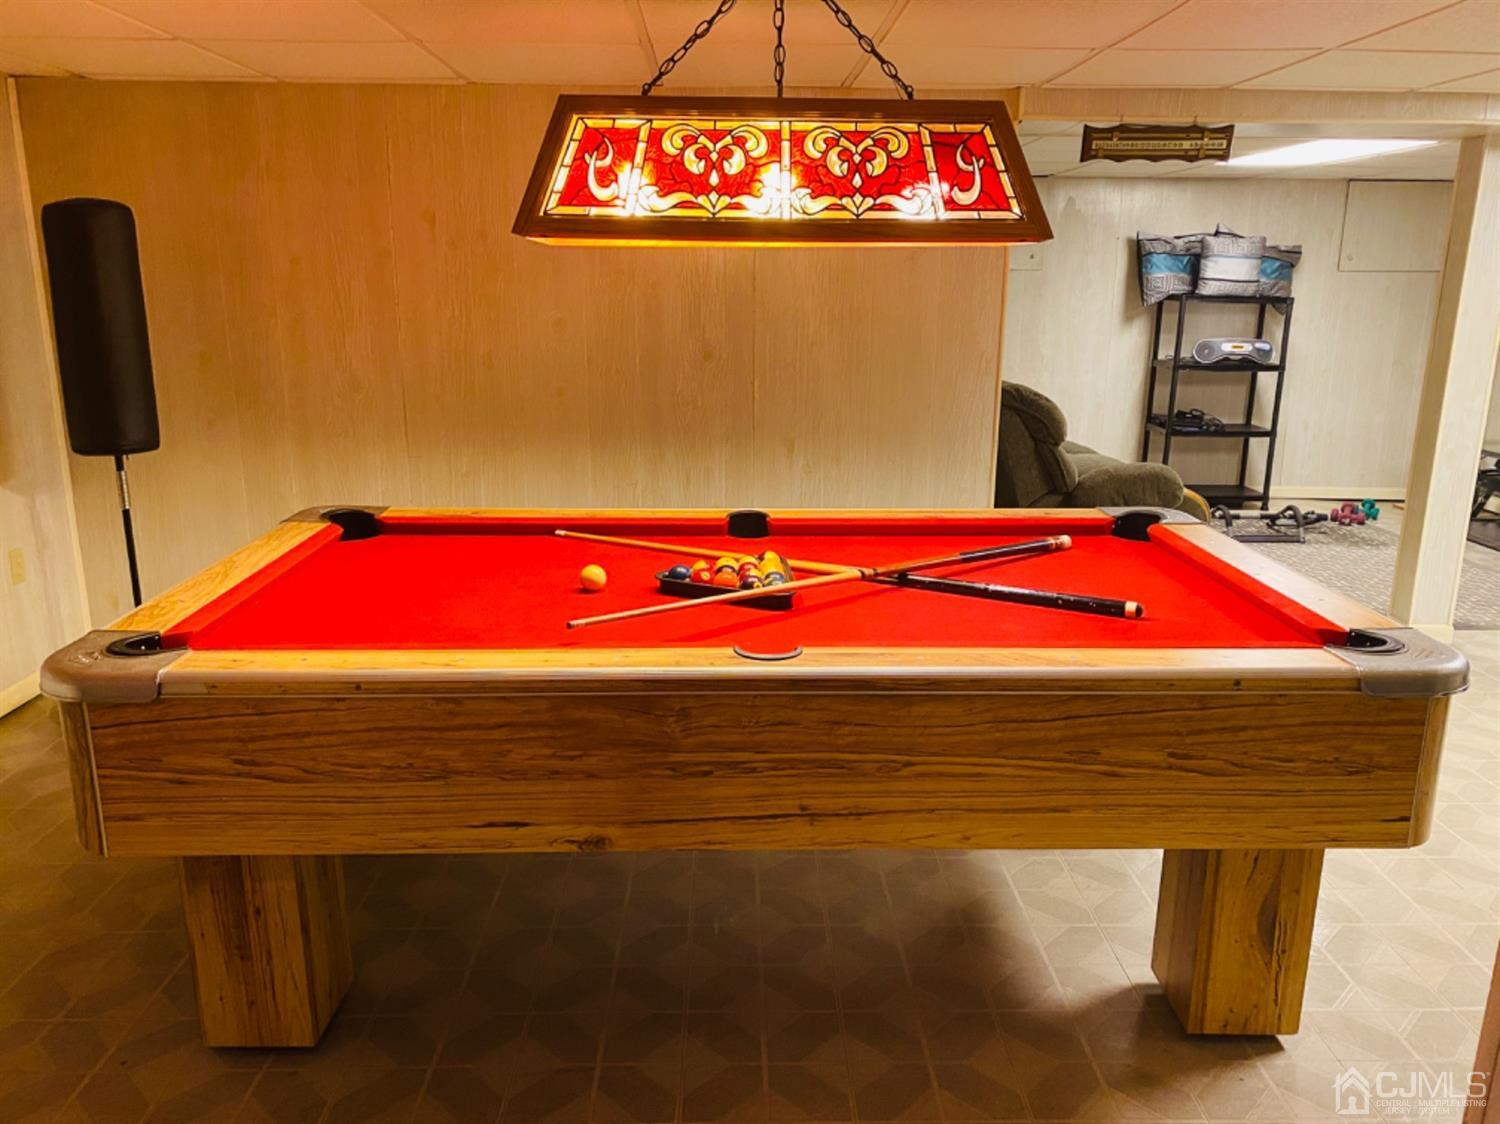 Finished Basement/Rec Area with Pool Table